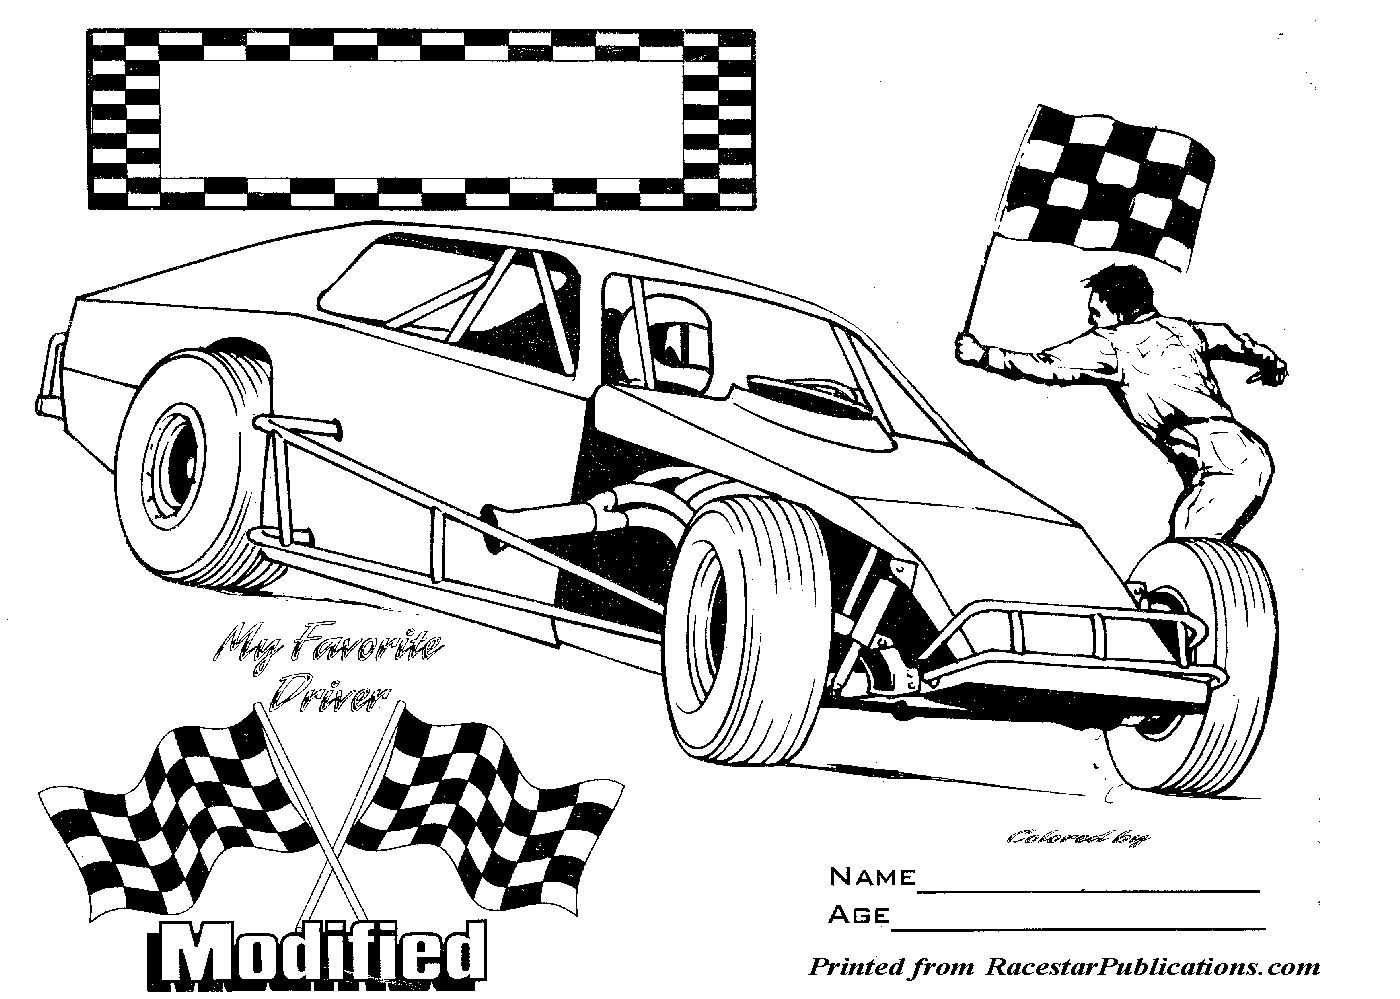 nascar coloring pages modified race car Colouring Pages Coloring